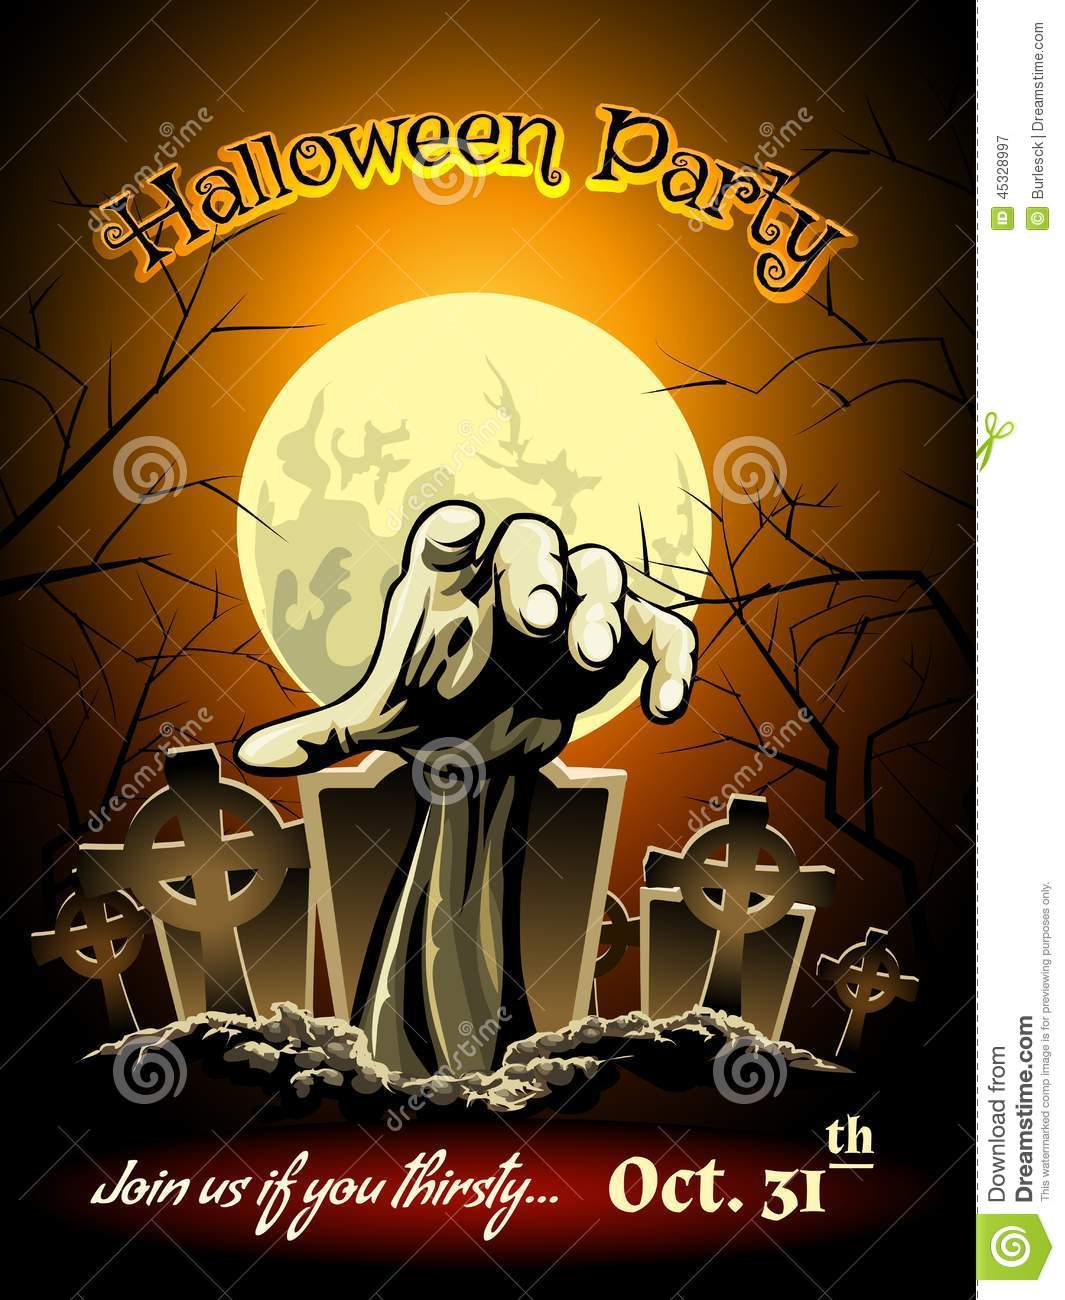 Halloween Party Invitation With Zombie Graphic Stock Vector ...